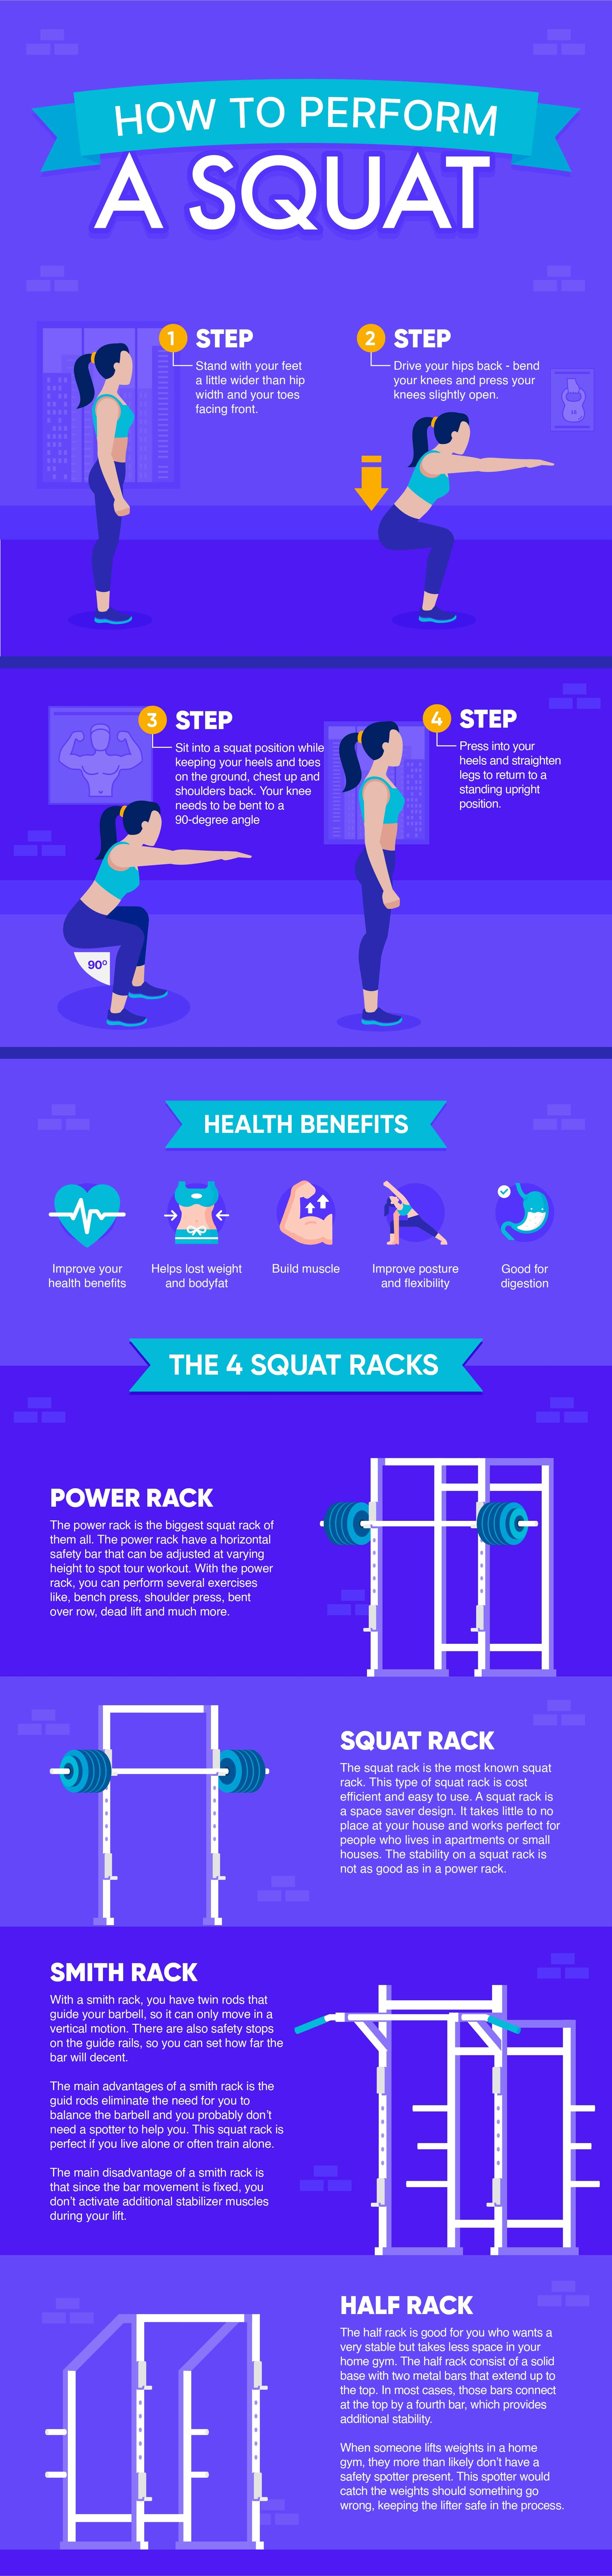 how-to-perform-squat-infographic-plaza